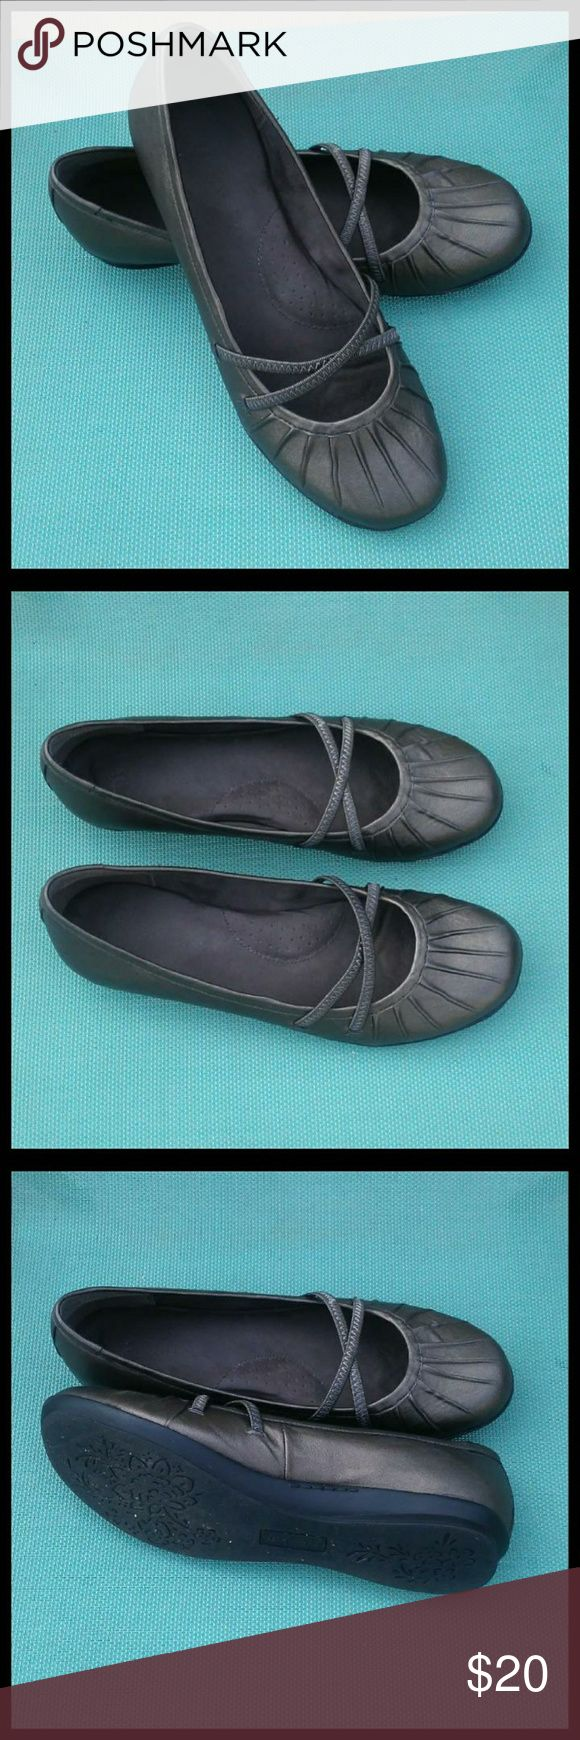 Bare Traps Wear Ever Comfort Shoes PRICE FIRM Wear Ever Memory Foam Comfort Flat Shoes  *  Elastic crossover bands  *  Pleated design on toe  *  Comfort foam insole   *  Pewter color   *  Size 9M  ***NOTE*** Worn twice. Shows slight wear, but in excellent condition. Box is torn, but will include for storage purposes.   Comfort shoes  Baretraps   Bare traps   Comfort flats   Comfort foam shoes BareTraps Shoes Flats & Loafers